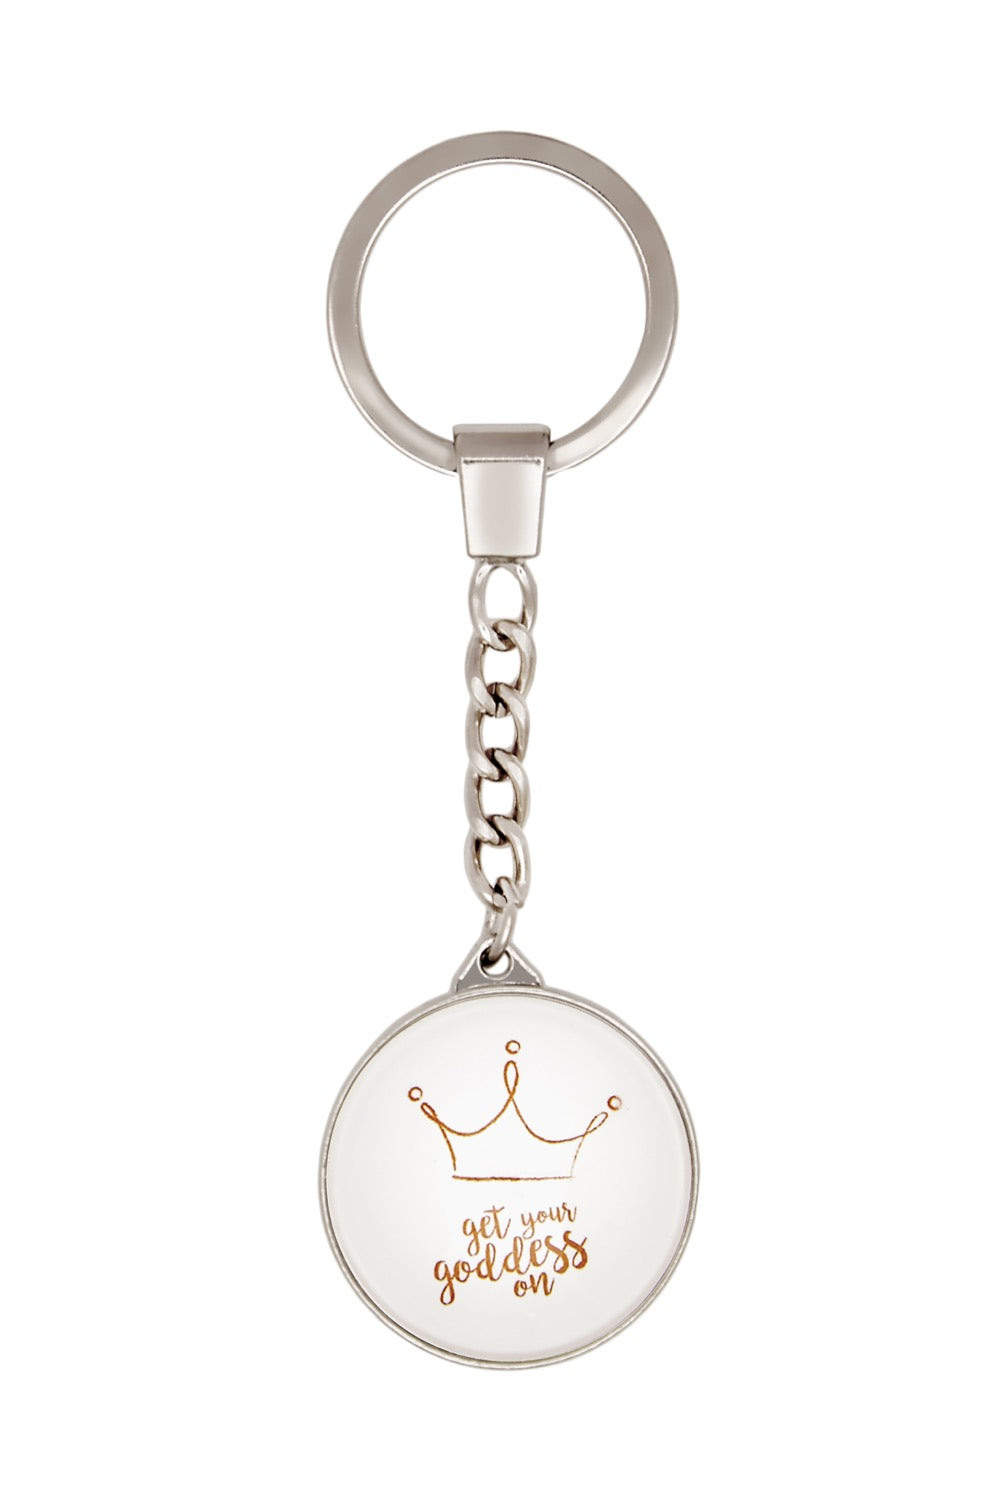 Get Your Goddess On White Round Keyring